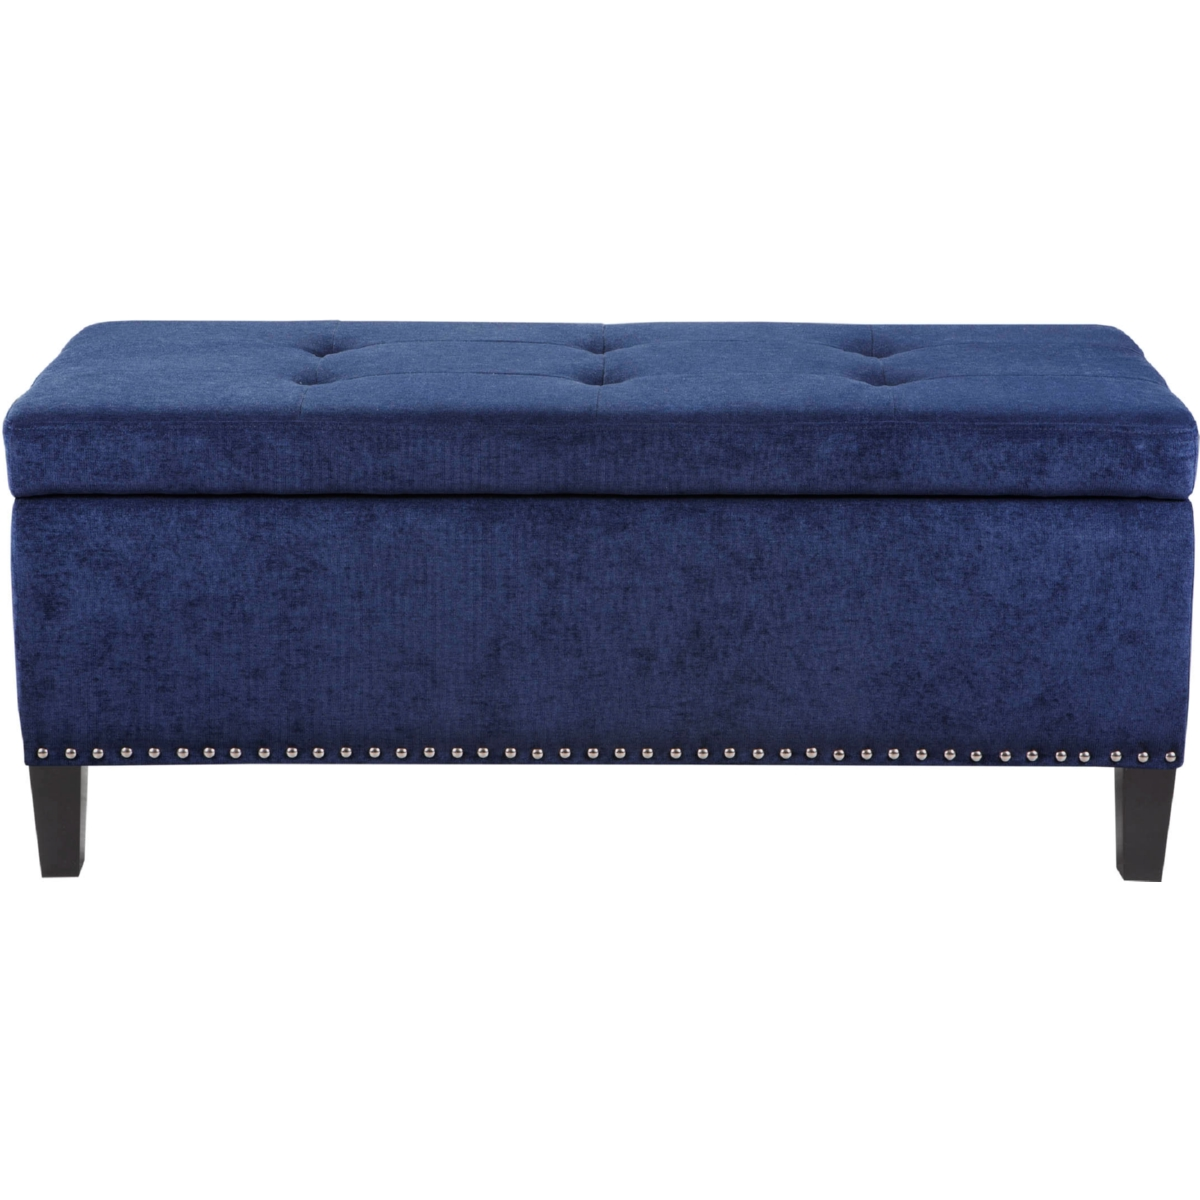 Excellent Shandra Ii Tufted Top Storage Bench In Royal Blue Fabric On Black Legs By Madison Park Pdpeps Interior Chair Design Pdpepsorg